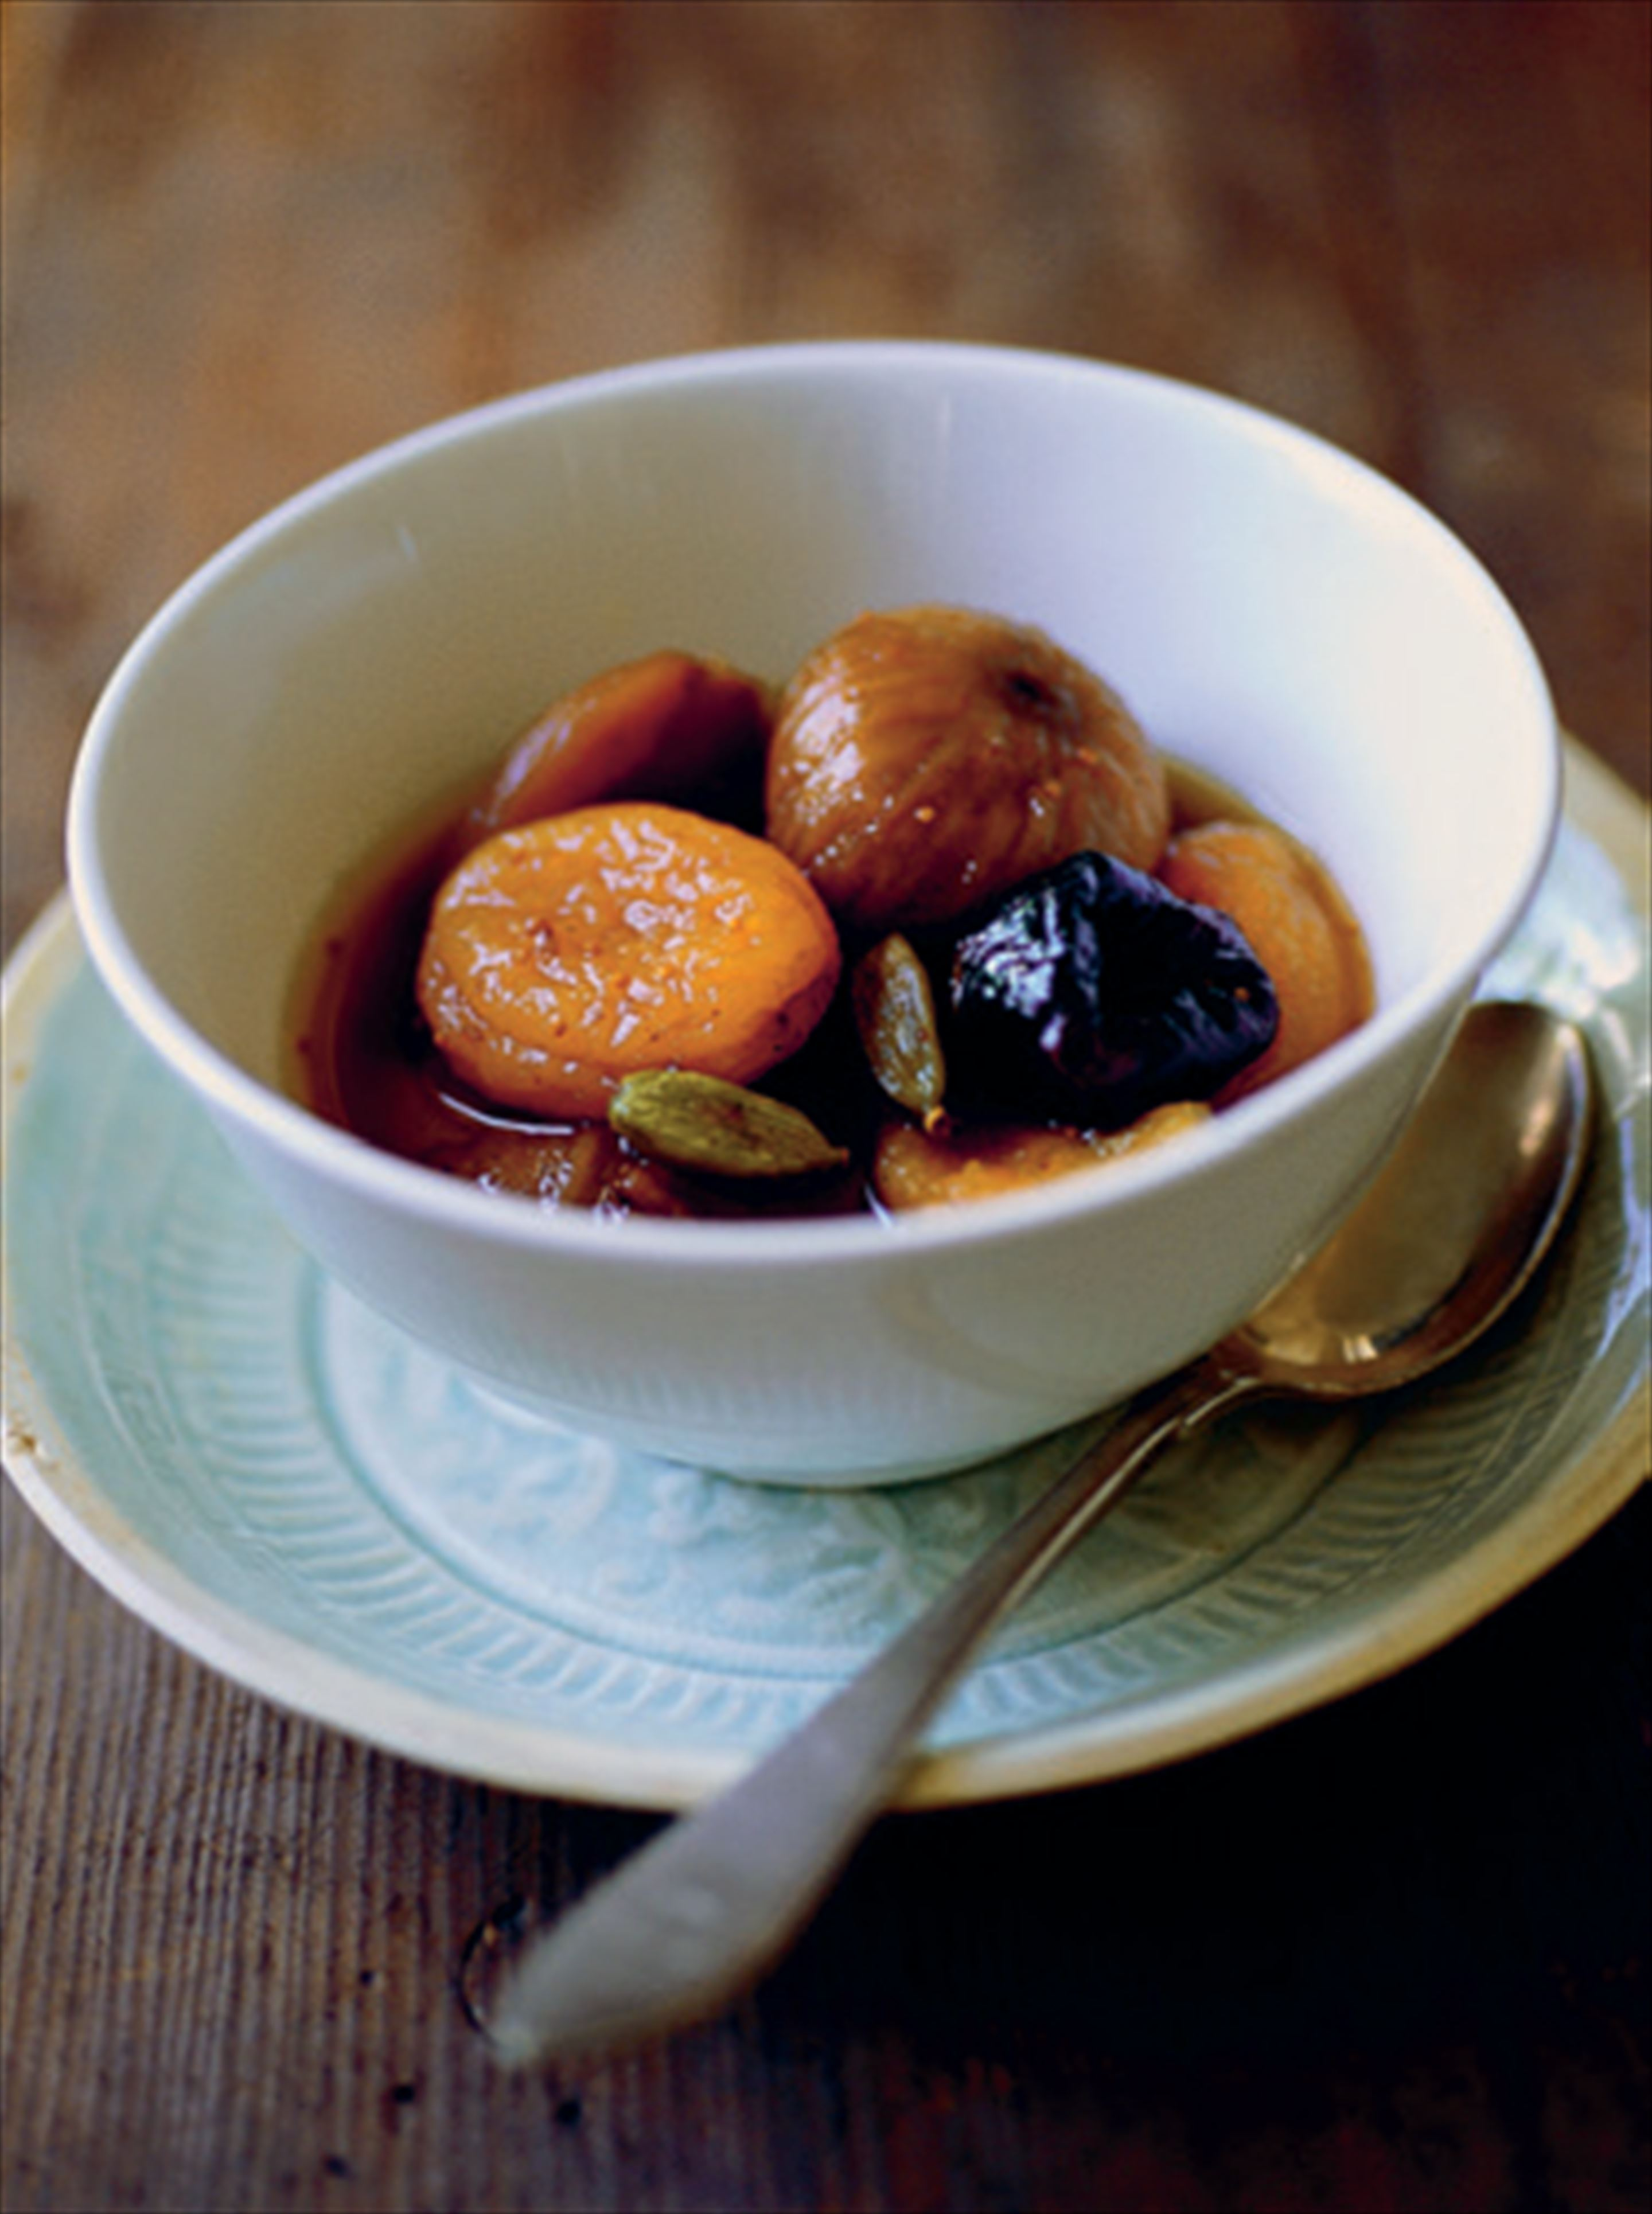 Spicy dried fruit compote with Earl Grey tea and more